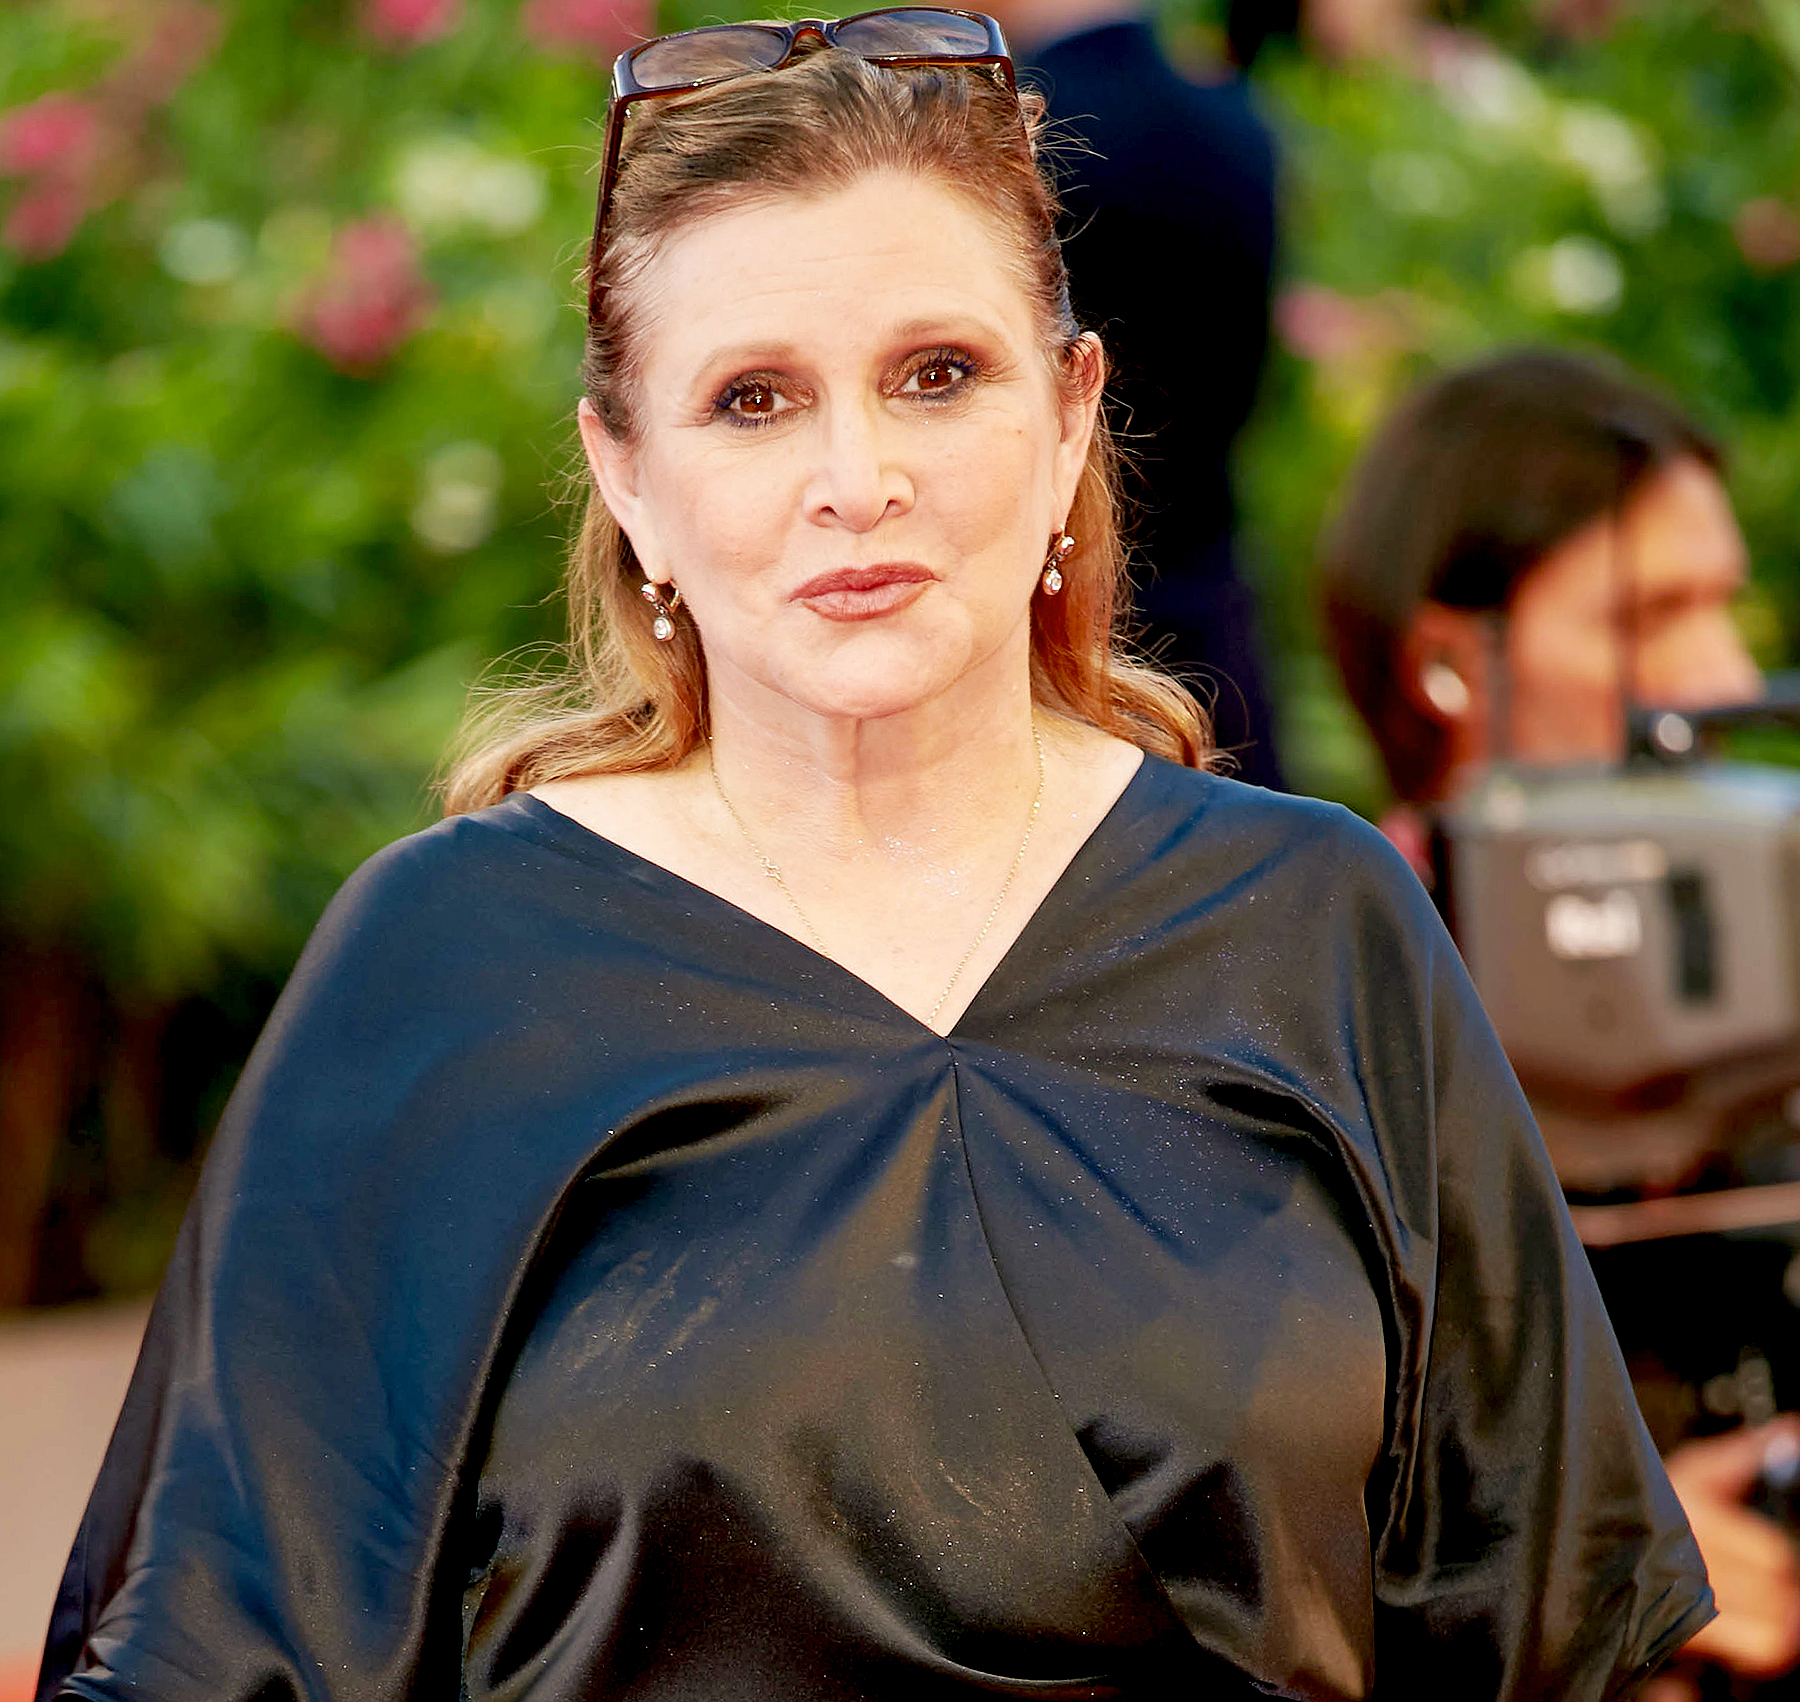 Carrie Fisher attends the Gravity Premiere and Opening of 70th Venice Film Festival at Sala Grande on August 28, 2013.